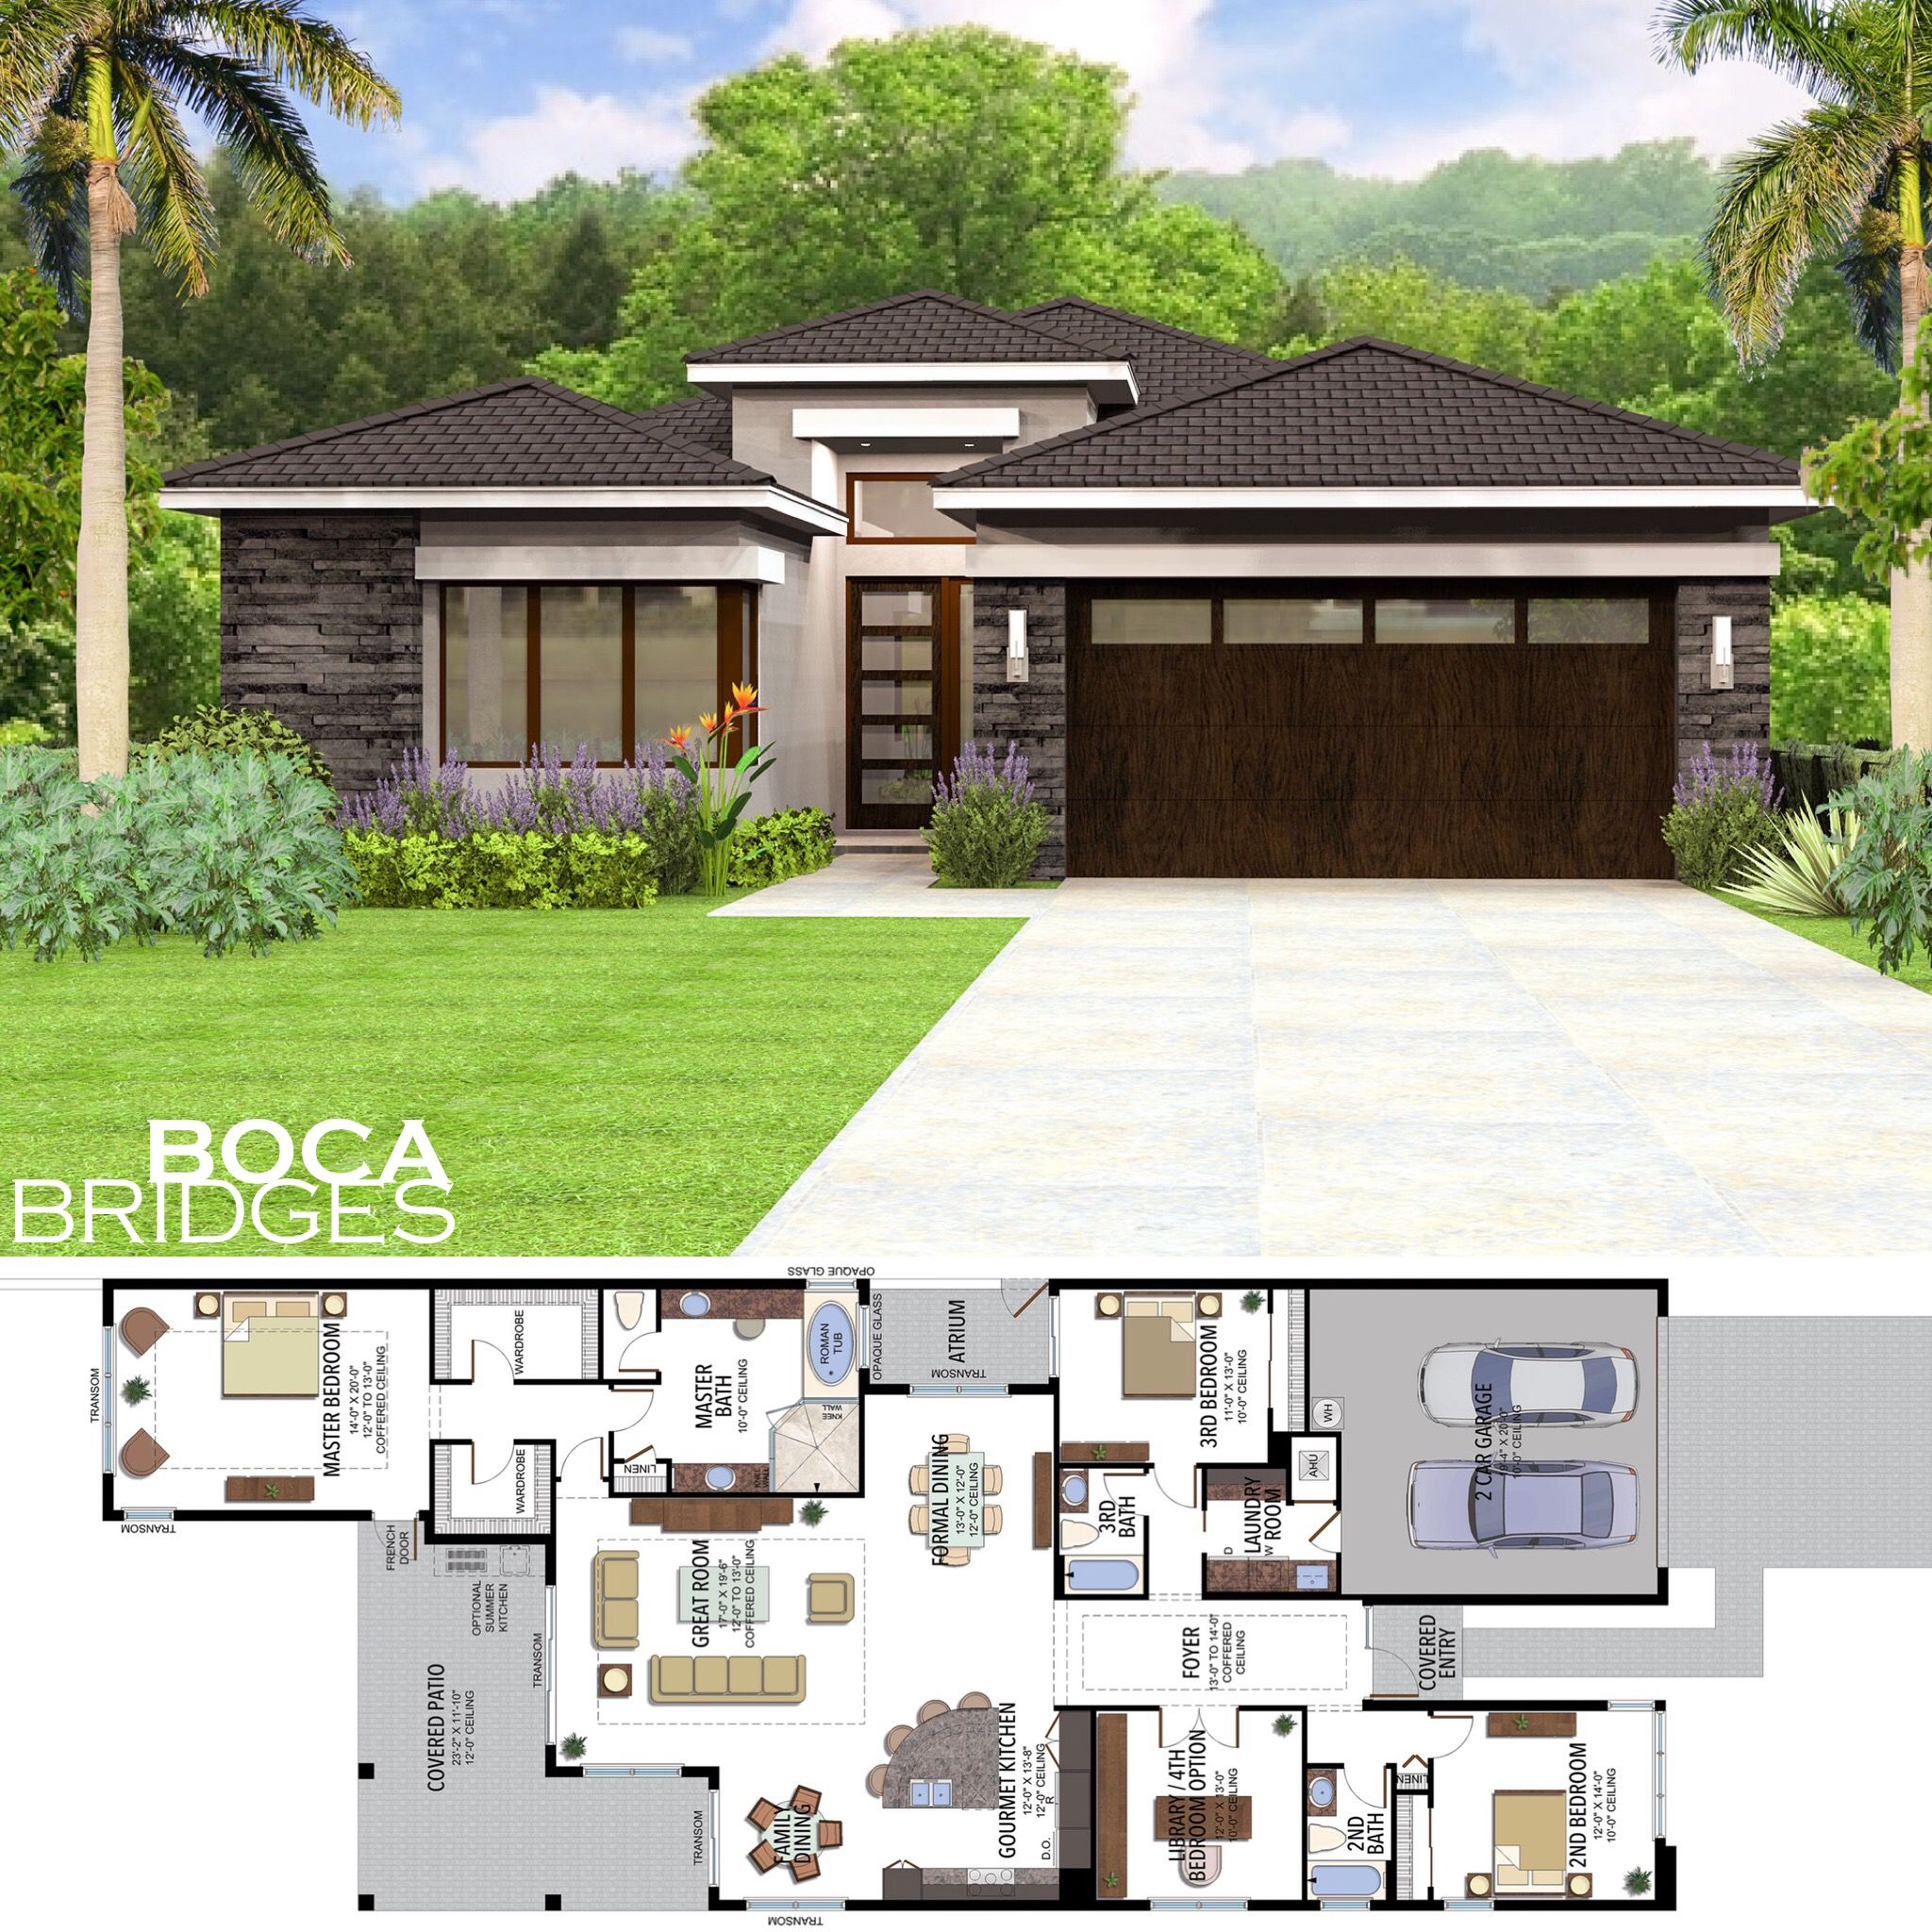 Now Available New Contemporary Home Designs At Bocabridges From The 800 S Follow The Link Ou Modern Bungalow House Beautiful House Plans House Plan Gallery